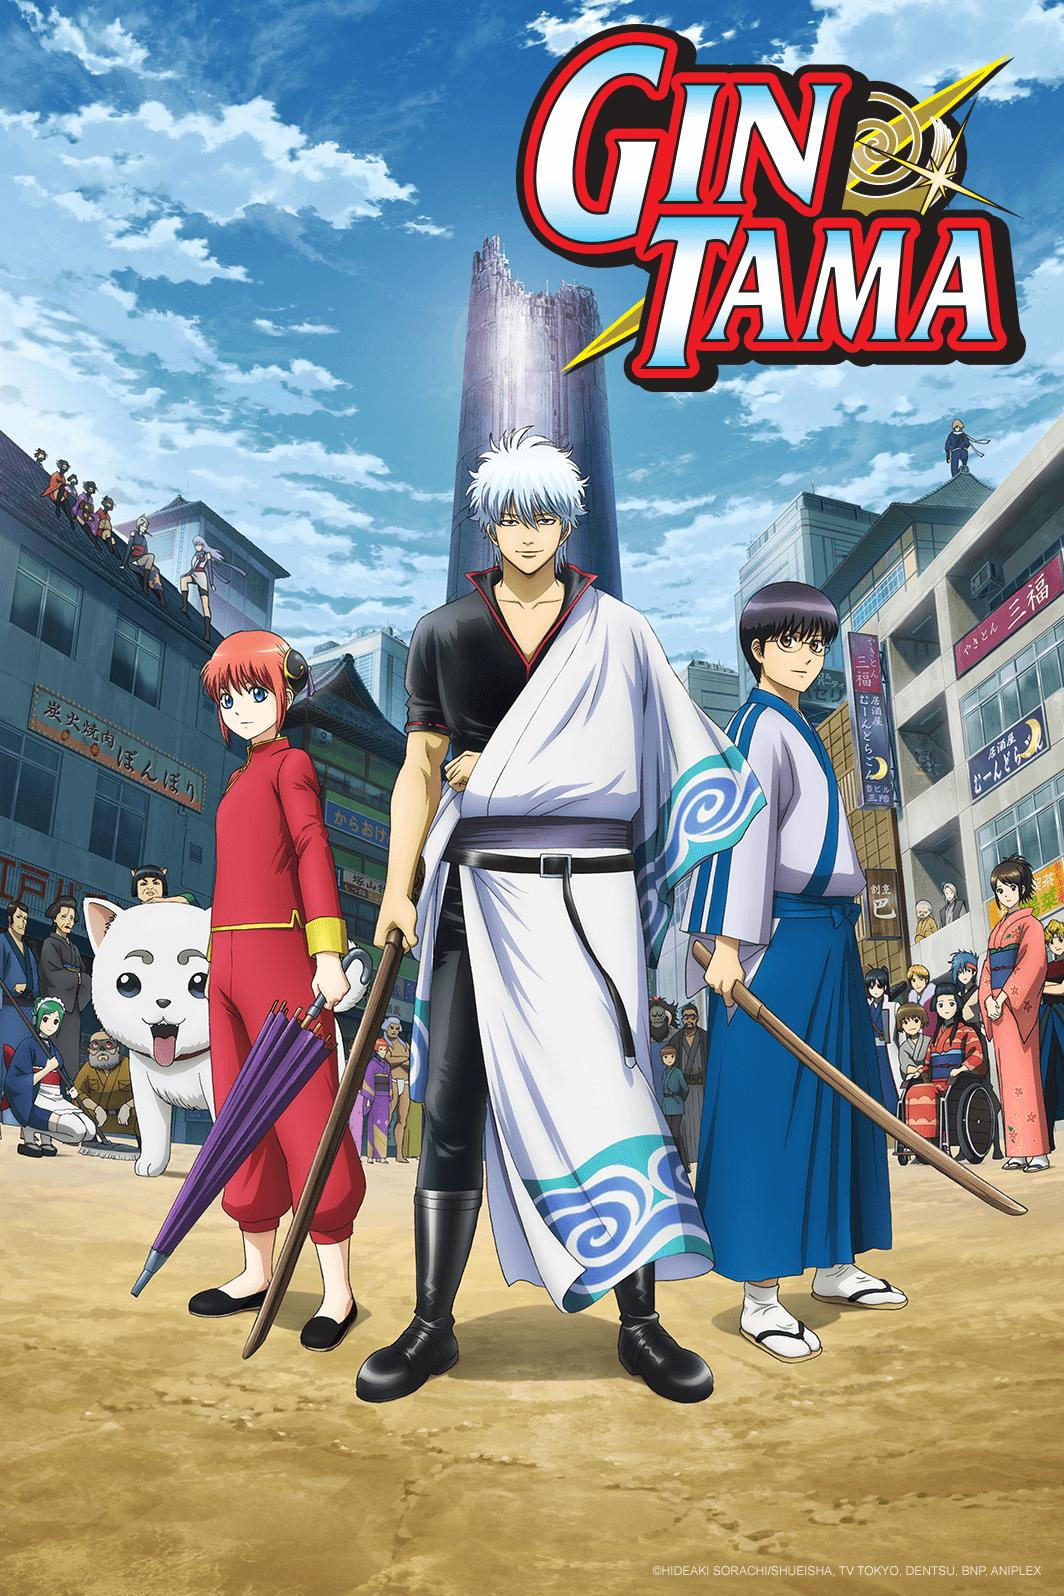 Gintama - Watch on Crunchyroll